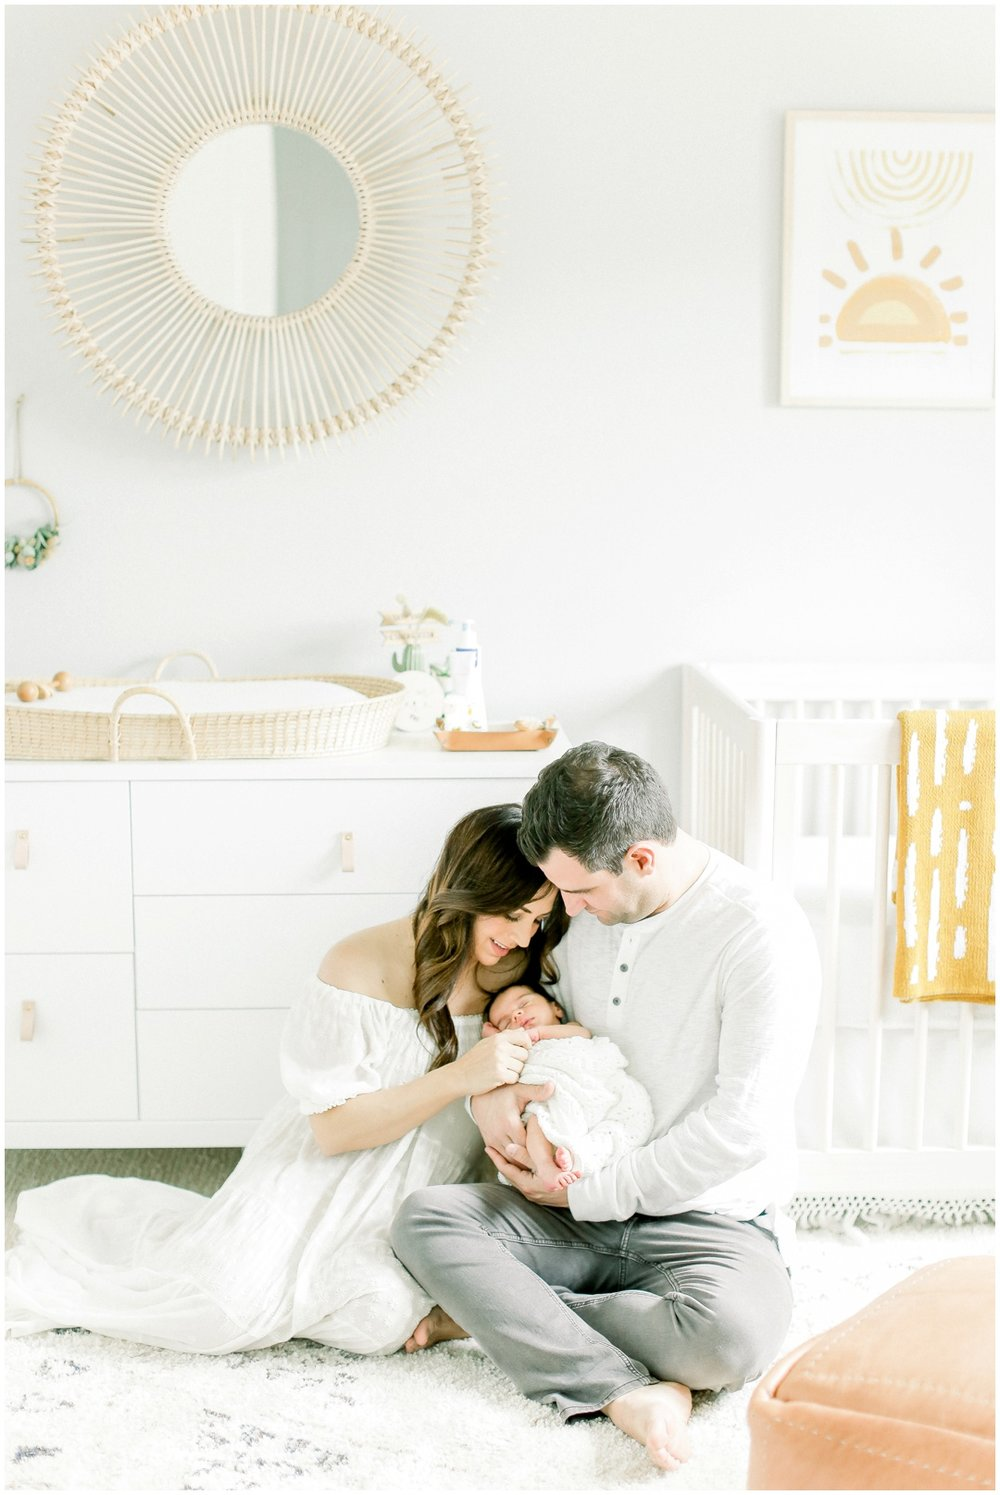 Newport_Beach_Newborn_Photographer_Newport_Beach_Maternity_Photographer_Orange_County_Family_Photographer_Cori_Kleckner_Photography_Huntington_Beach_Photographer_Family_OC_Newborn_Danielle_Char_Baum_Family_3064.jpg